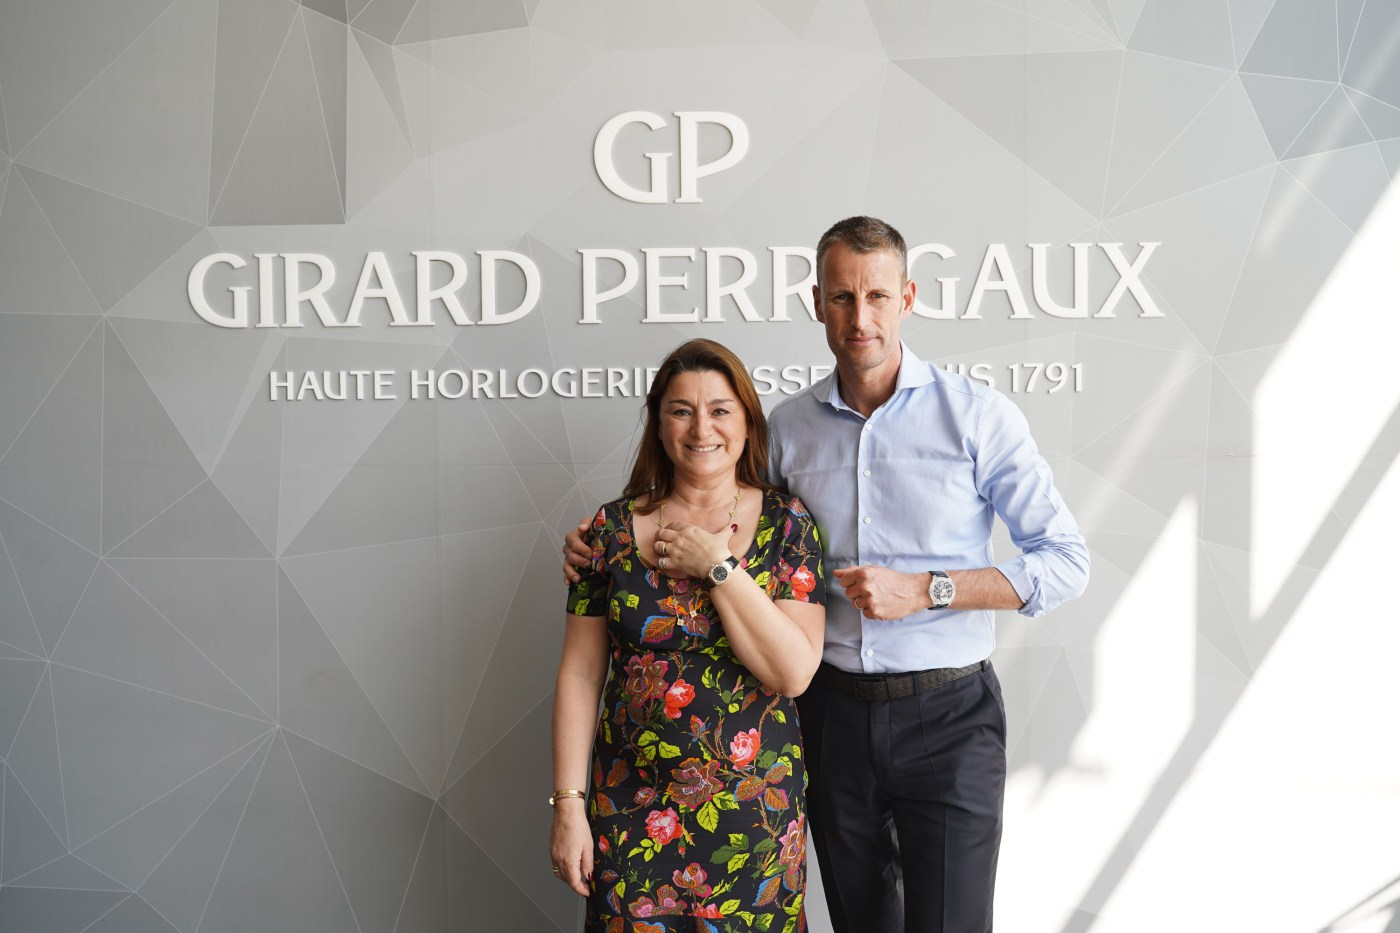 FHH Director Fabienne Lupo and Patrick Pruniaux of Girard-Perregaux